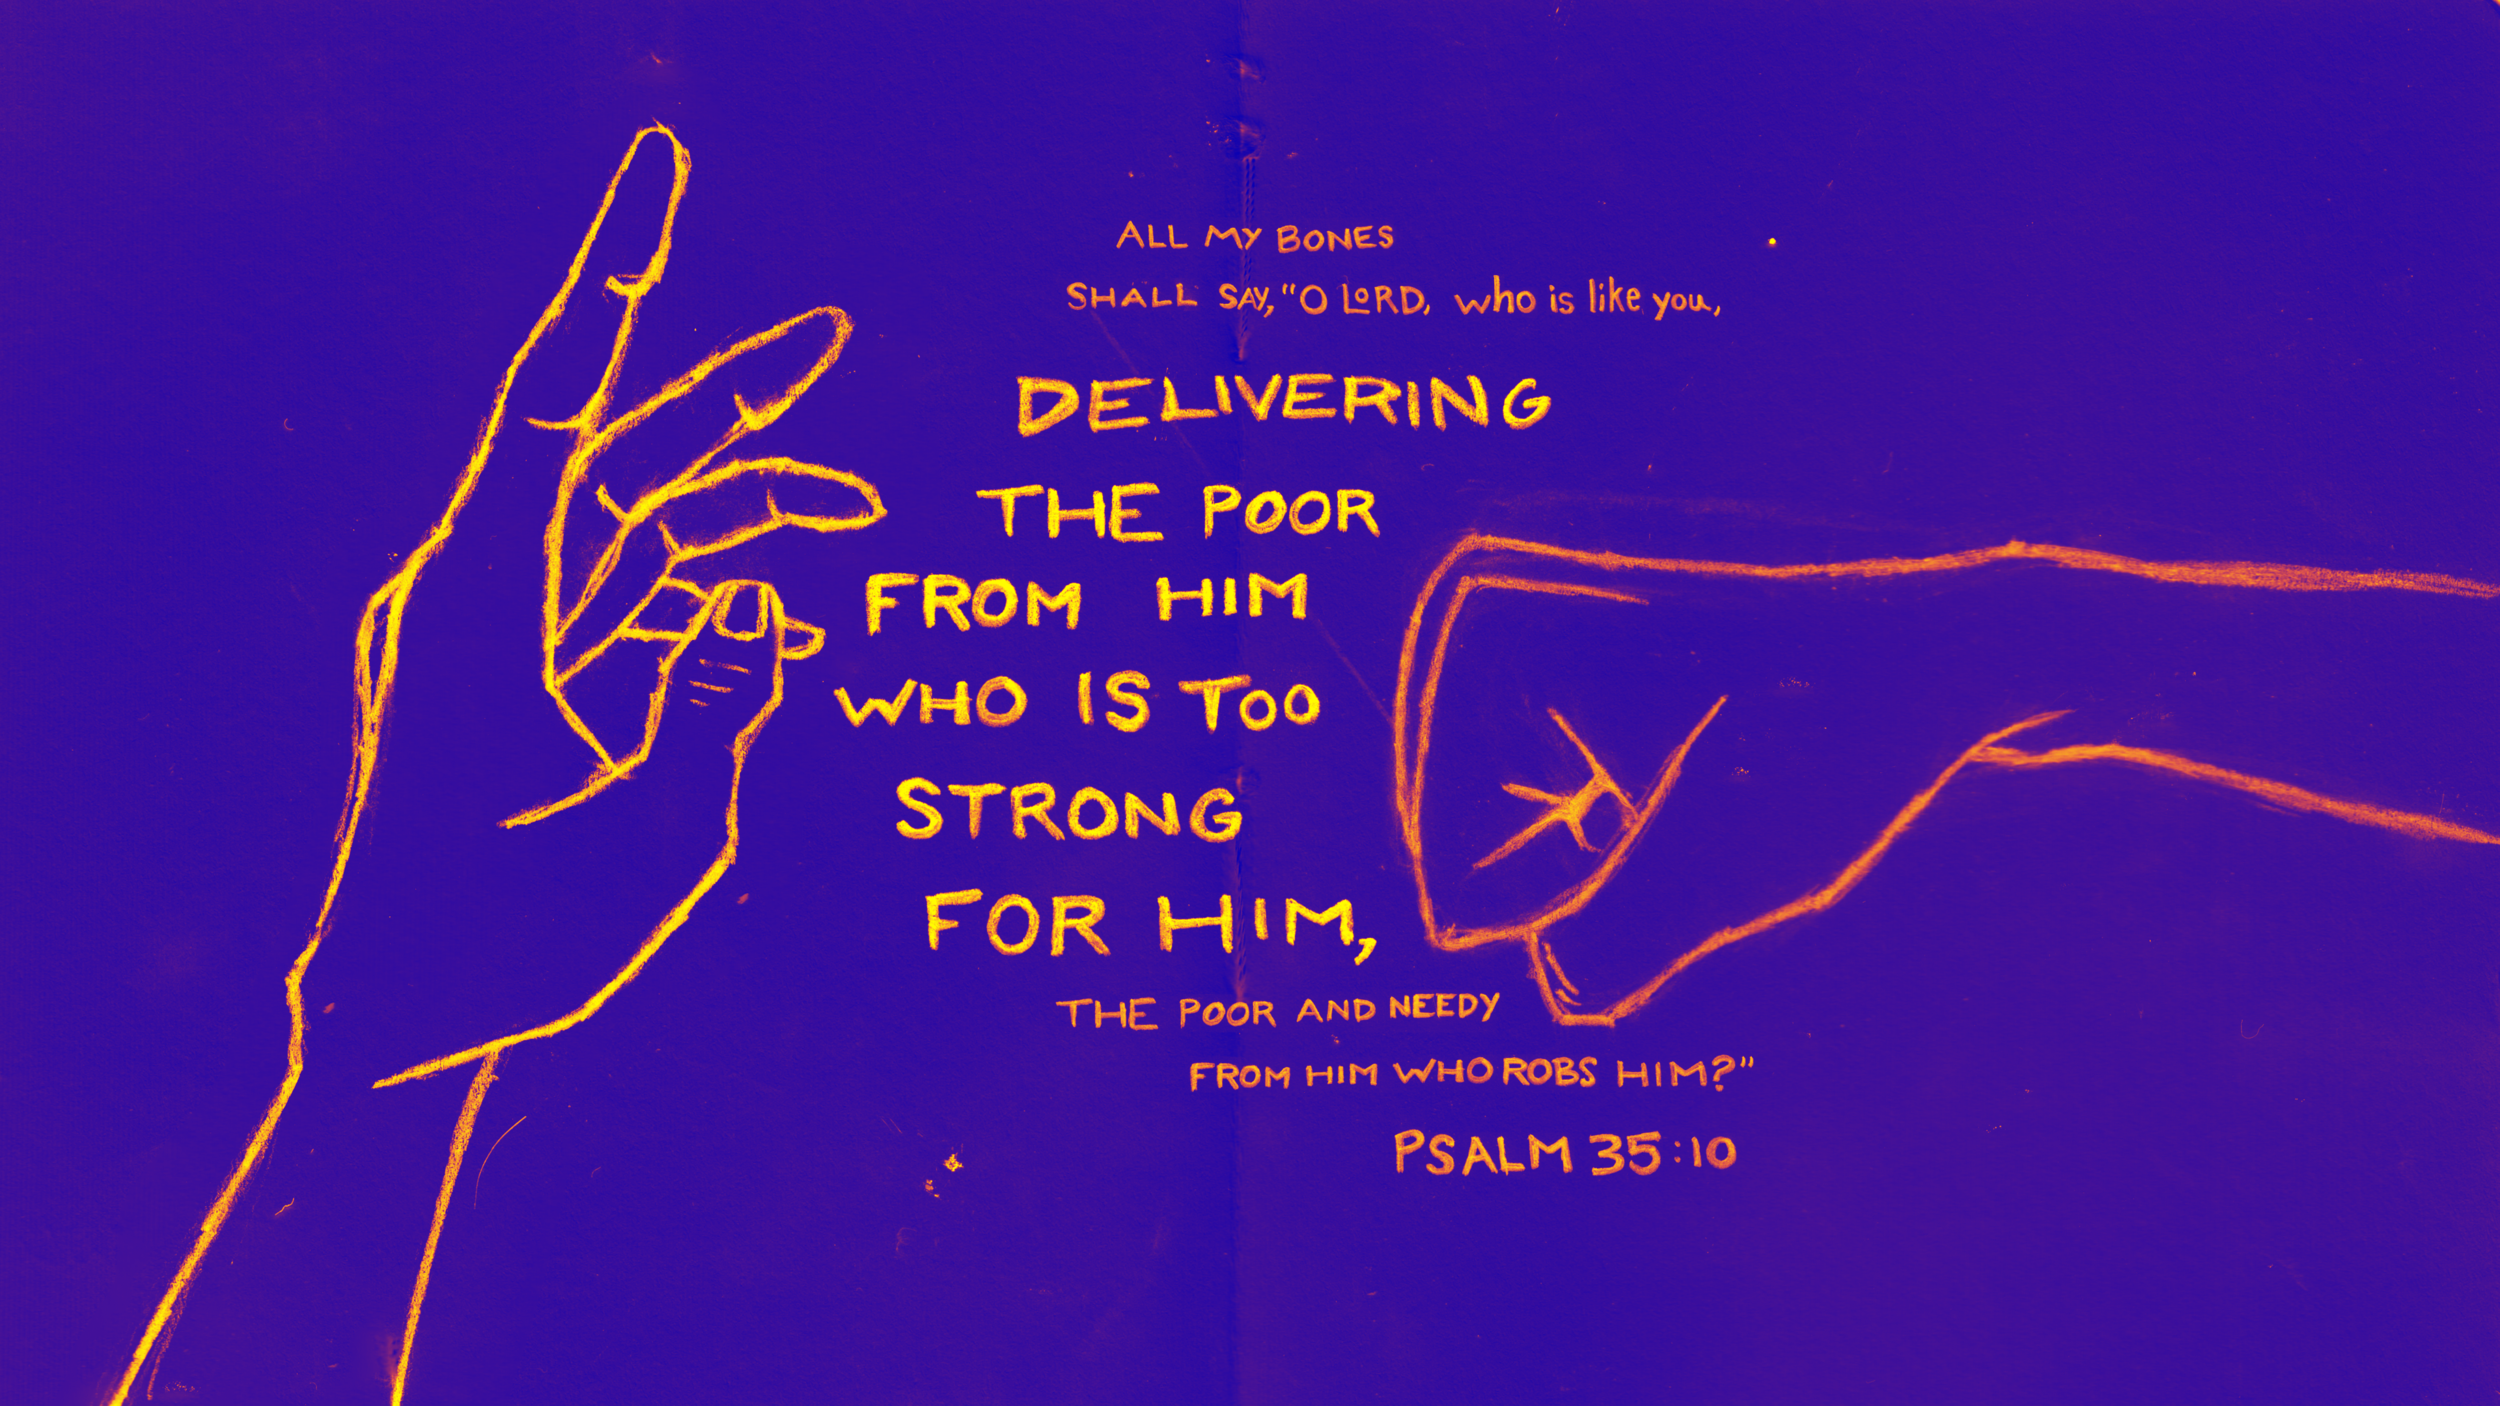 Psalm_35_10-3840x2160.png